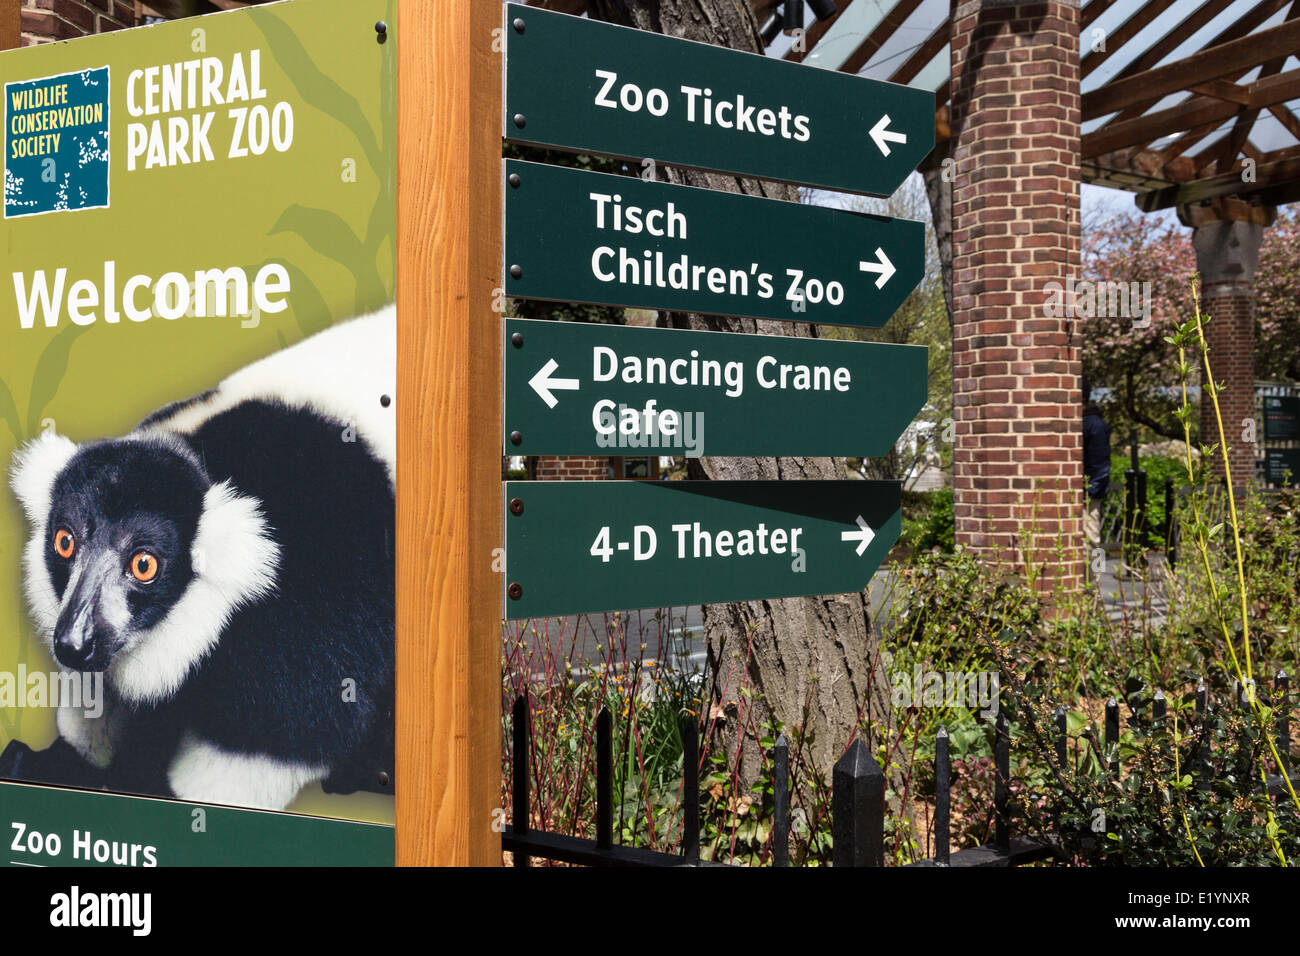 1c454f188 Central Park Zoo Signs, NYC, USA Stock Photo: 70066047 - Alamy